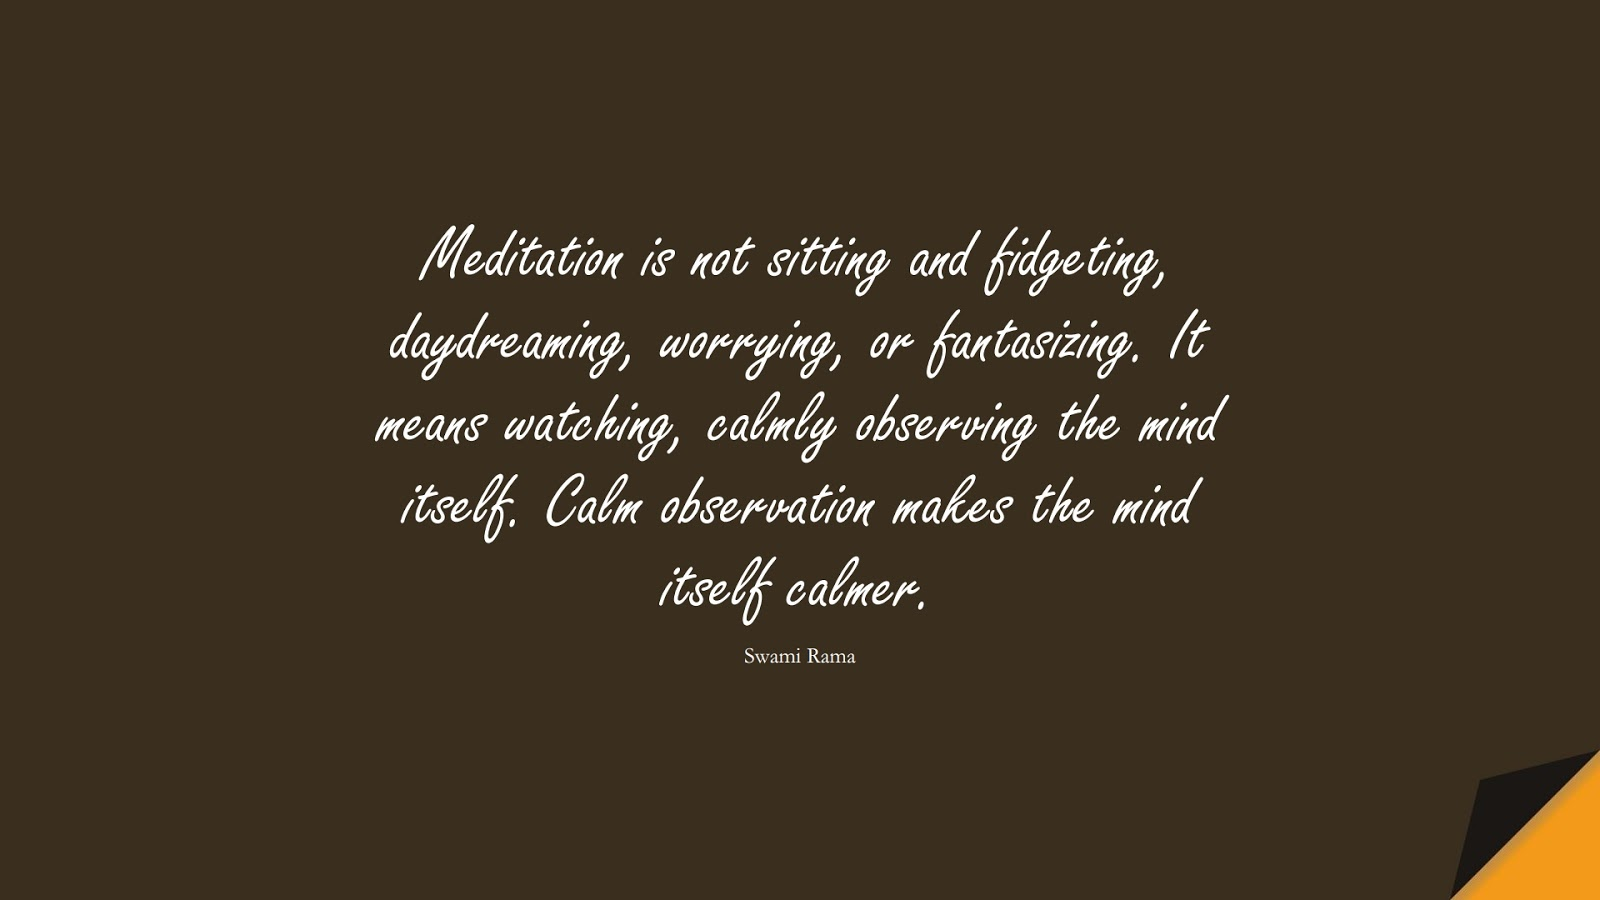 Meditation is not sitting and fidgeting, daydreaming, worrying, or fantasizing. It means watching, calmly observing the mind itself. Calm observation makes the mind itself calmer. (Swami Rama);  #CalmQuotes